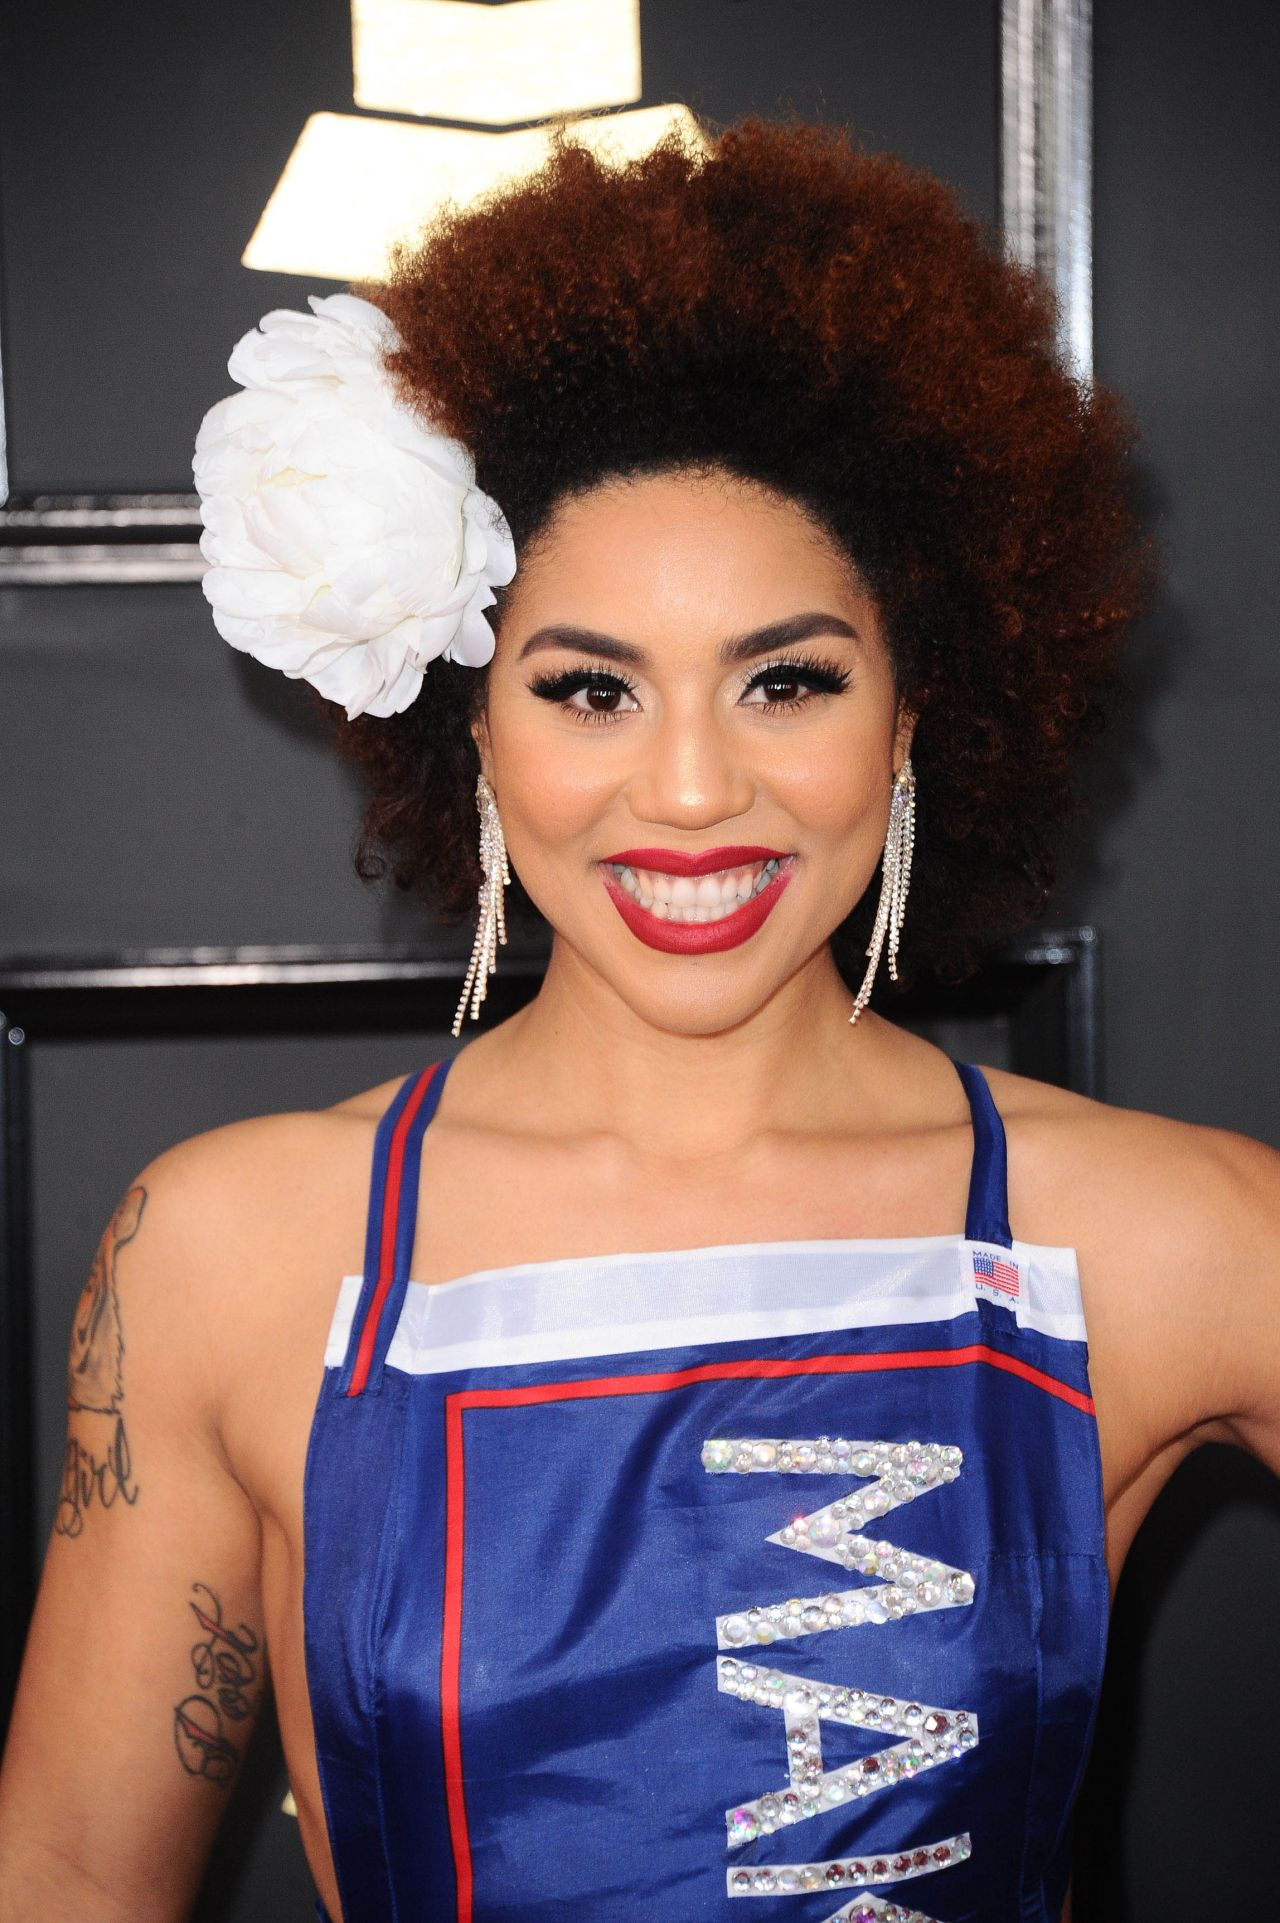 joy villa - photo #3